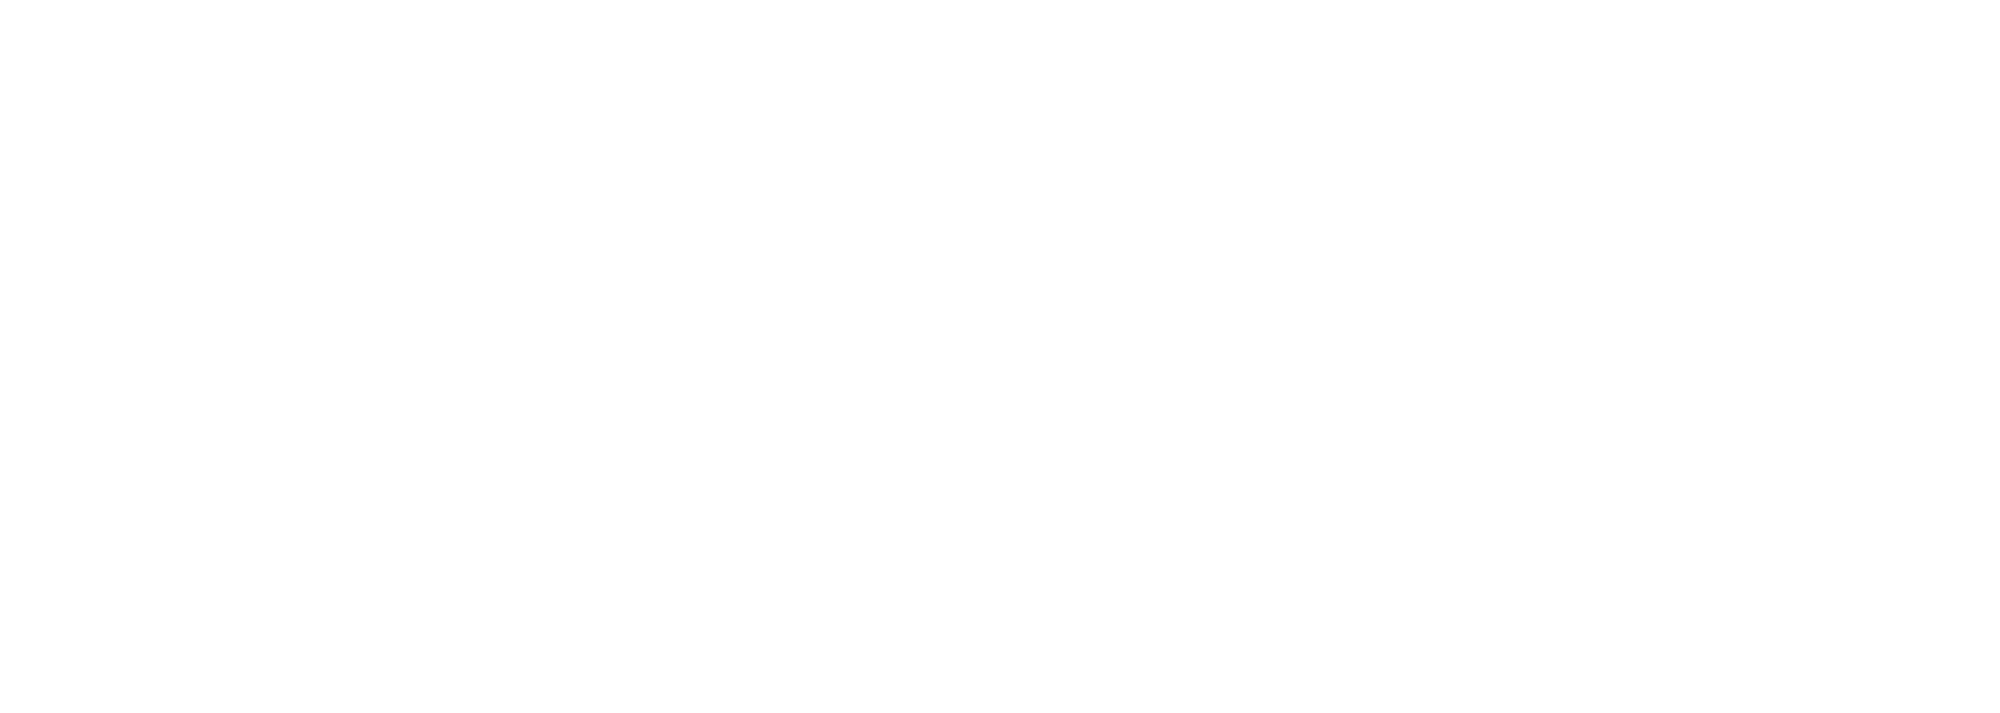 Podcast-Movement-logo-white